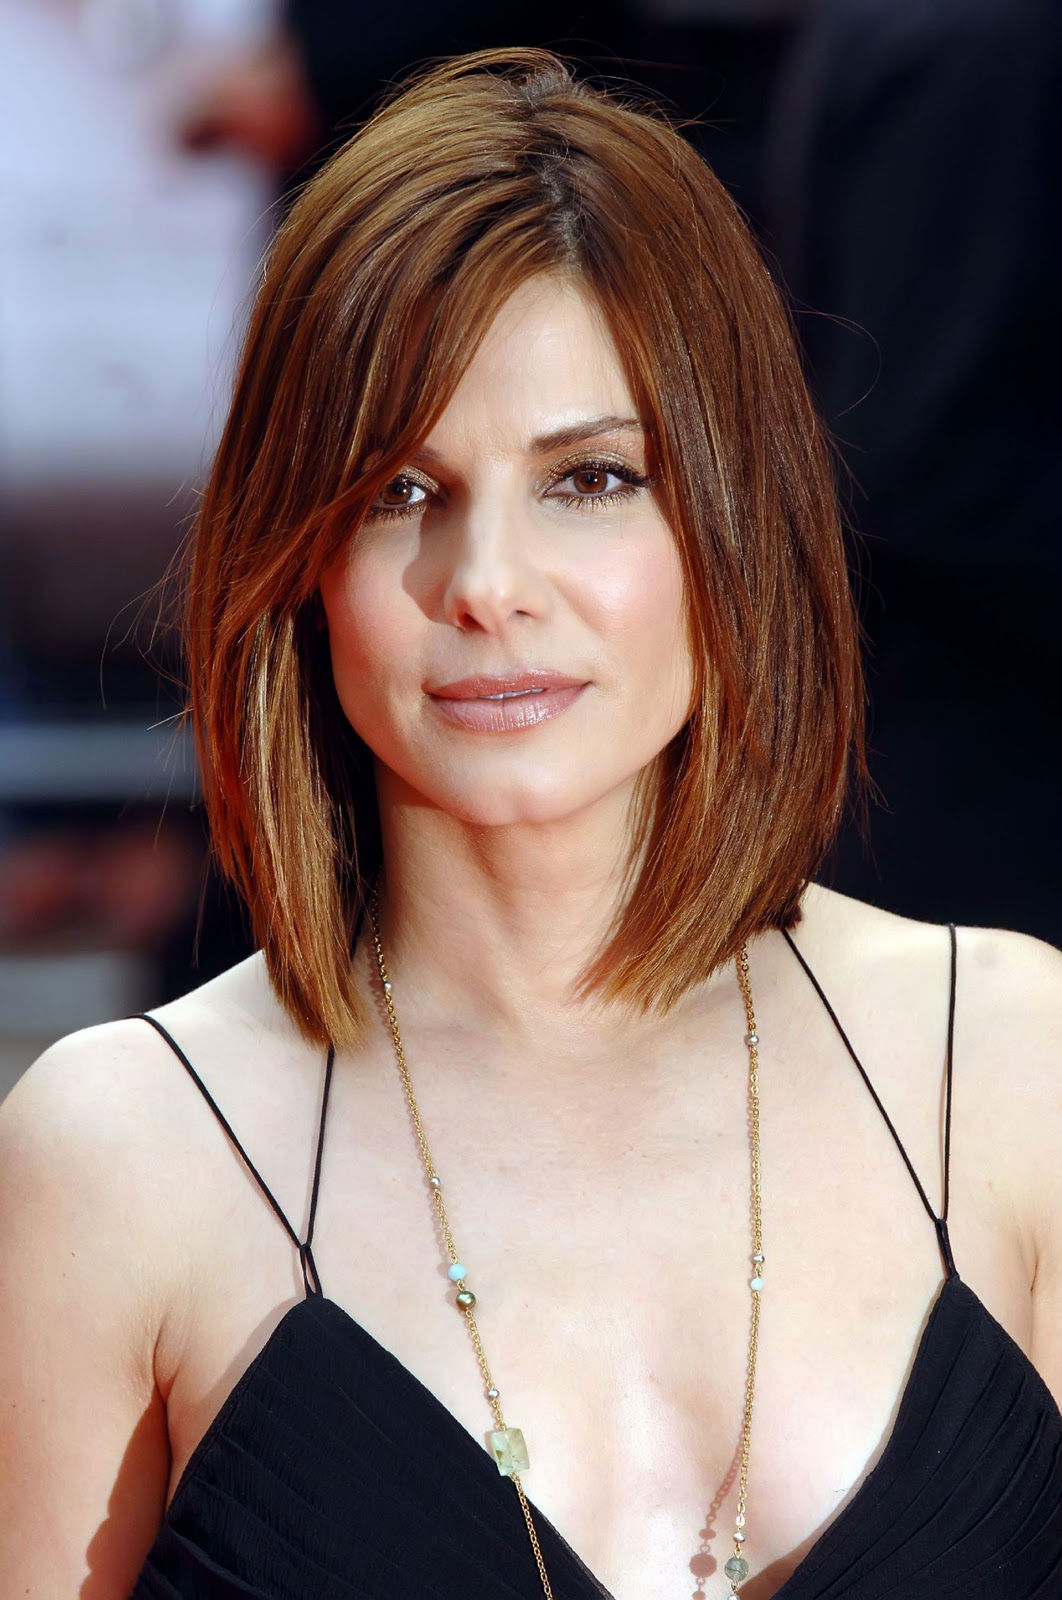 A New Life Hartz Sandra Bullock With Different Hairstyle